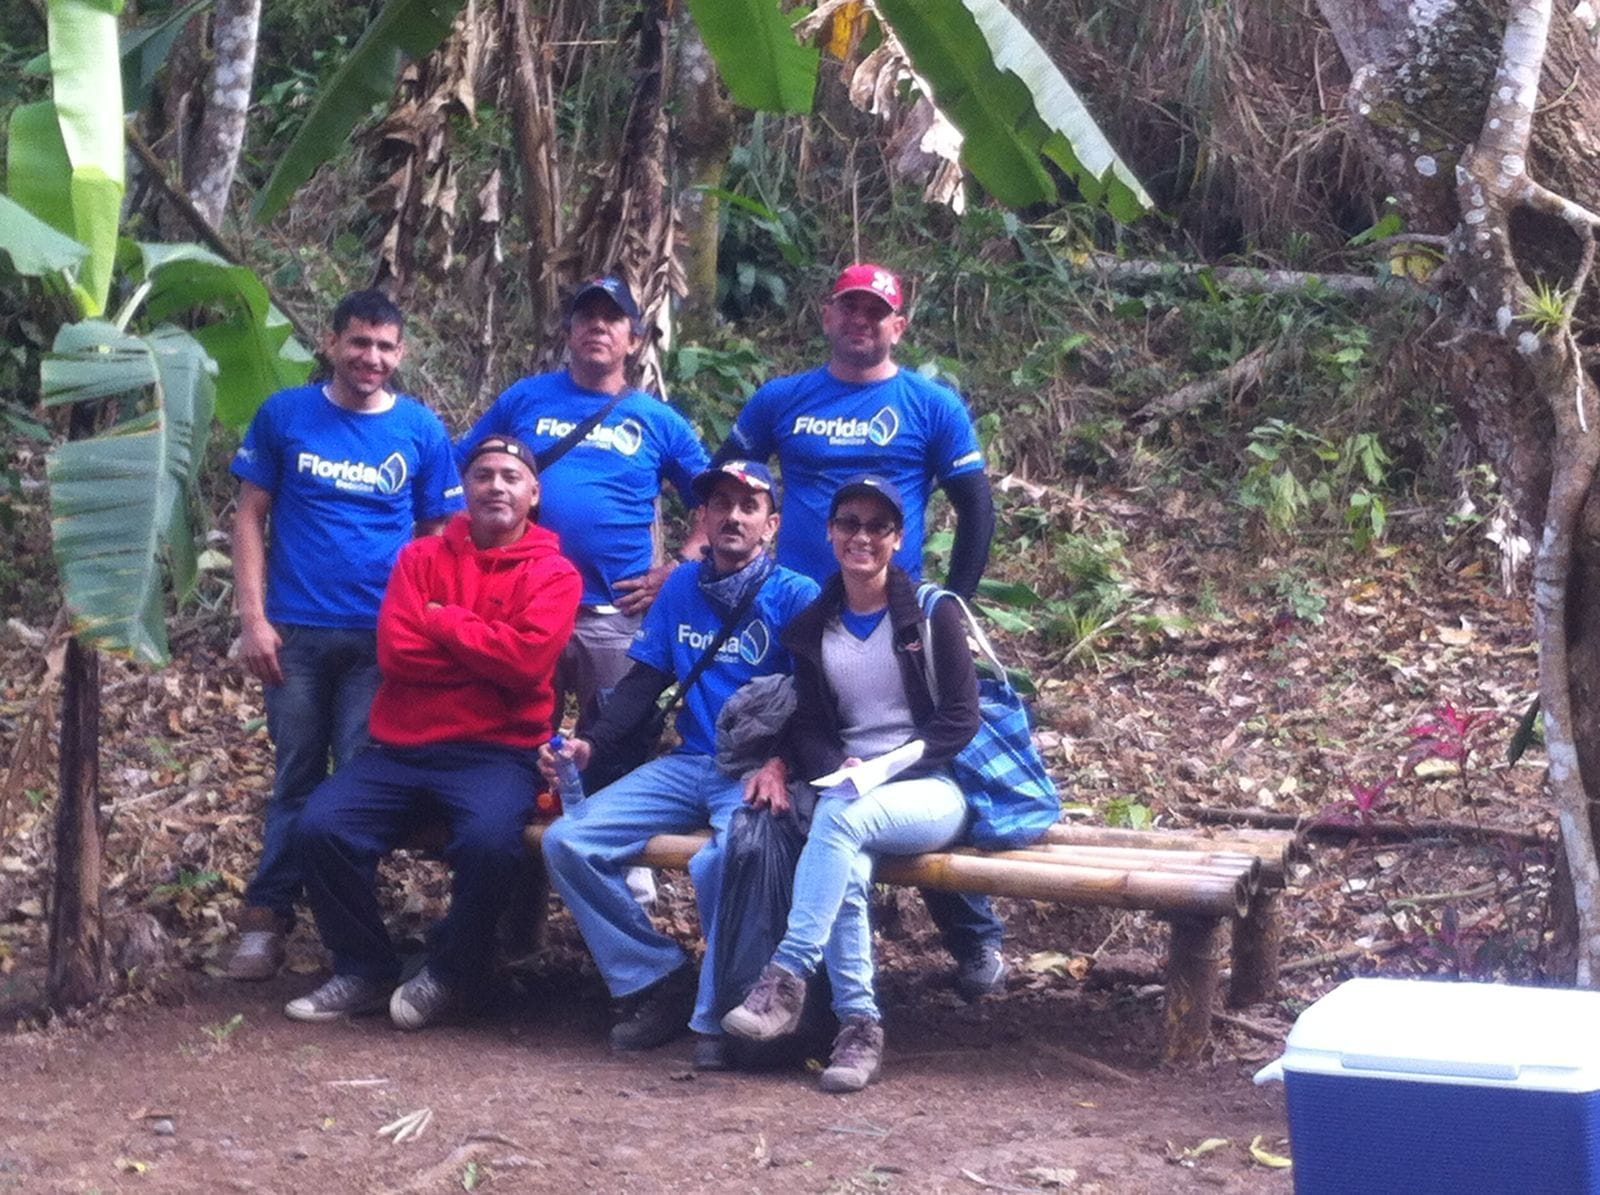 voluntariadoflorida2016-16